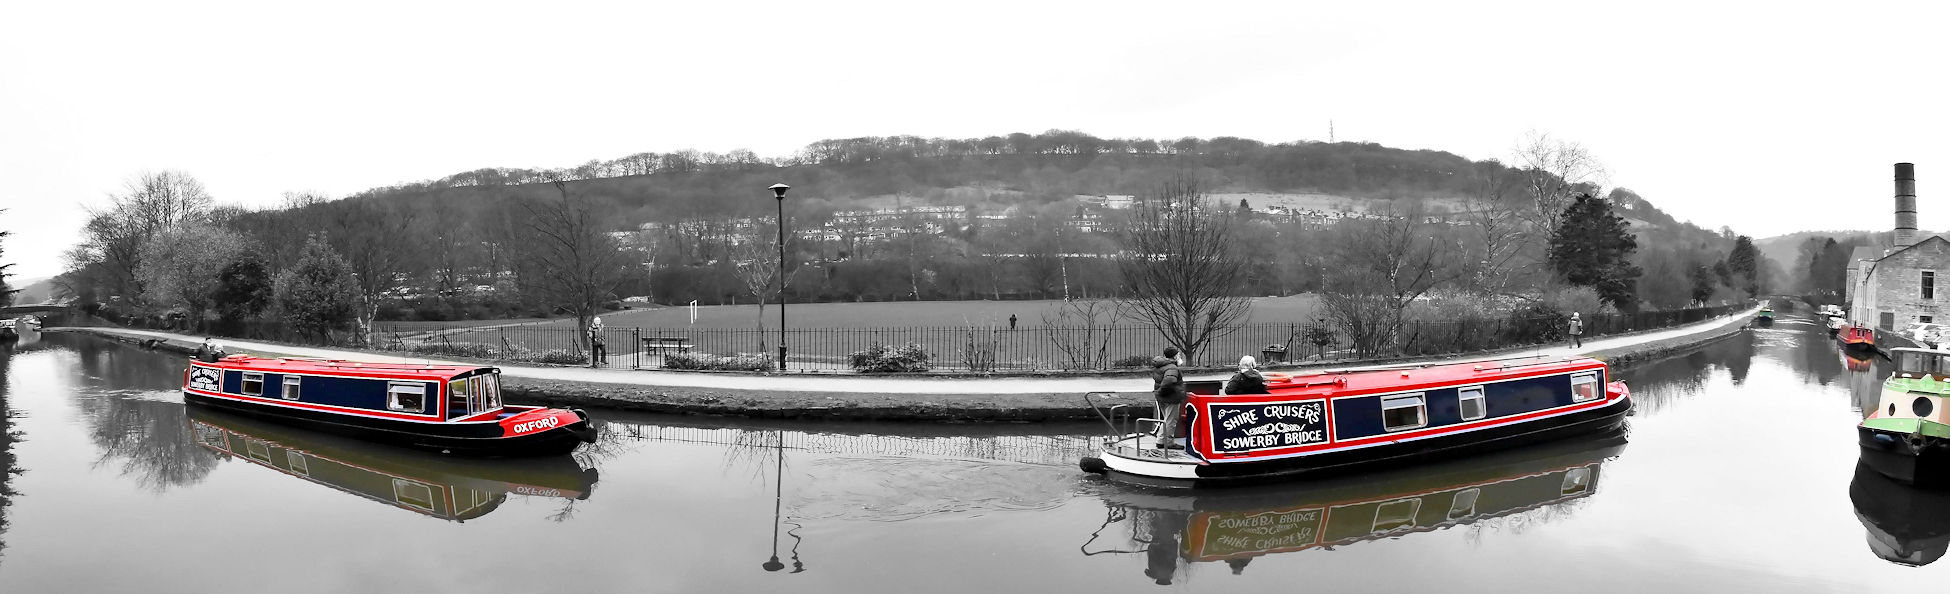 Moorings on the Marton Pool, Leeds & Liverpool Canal